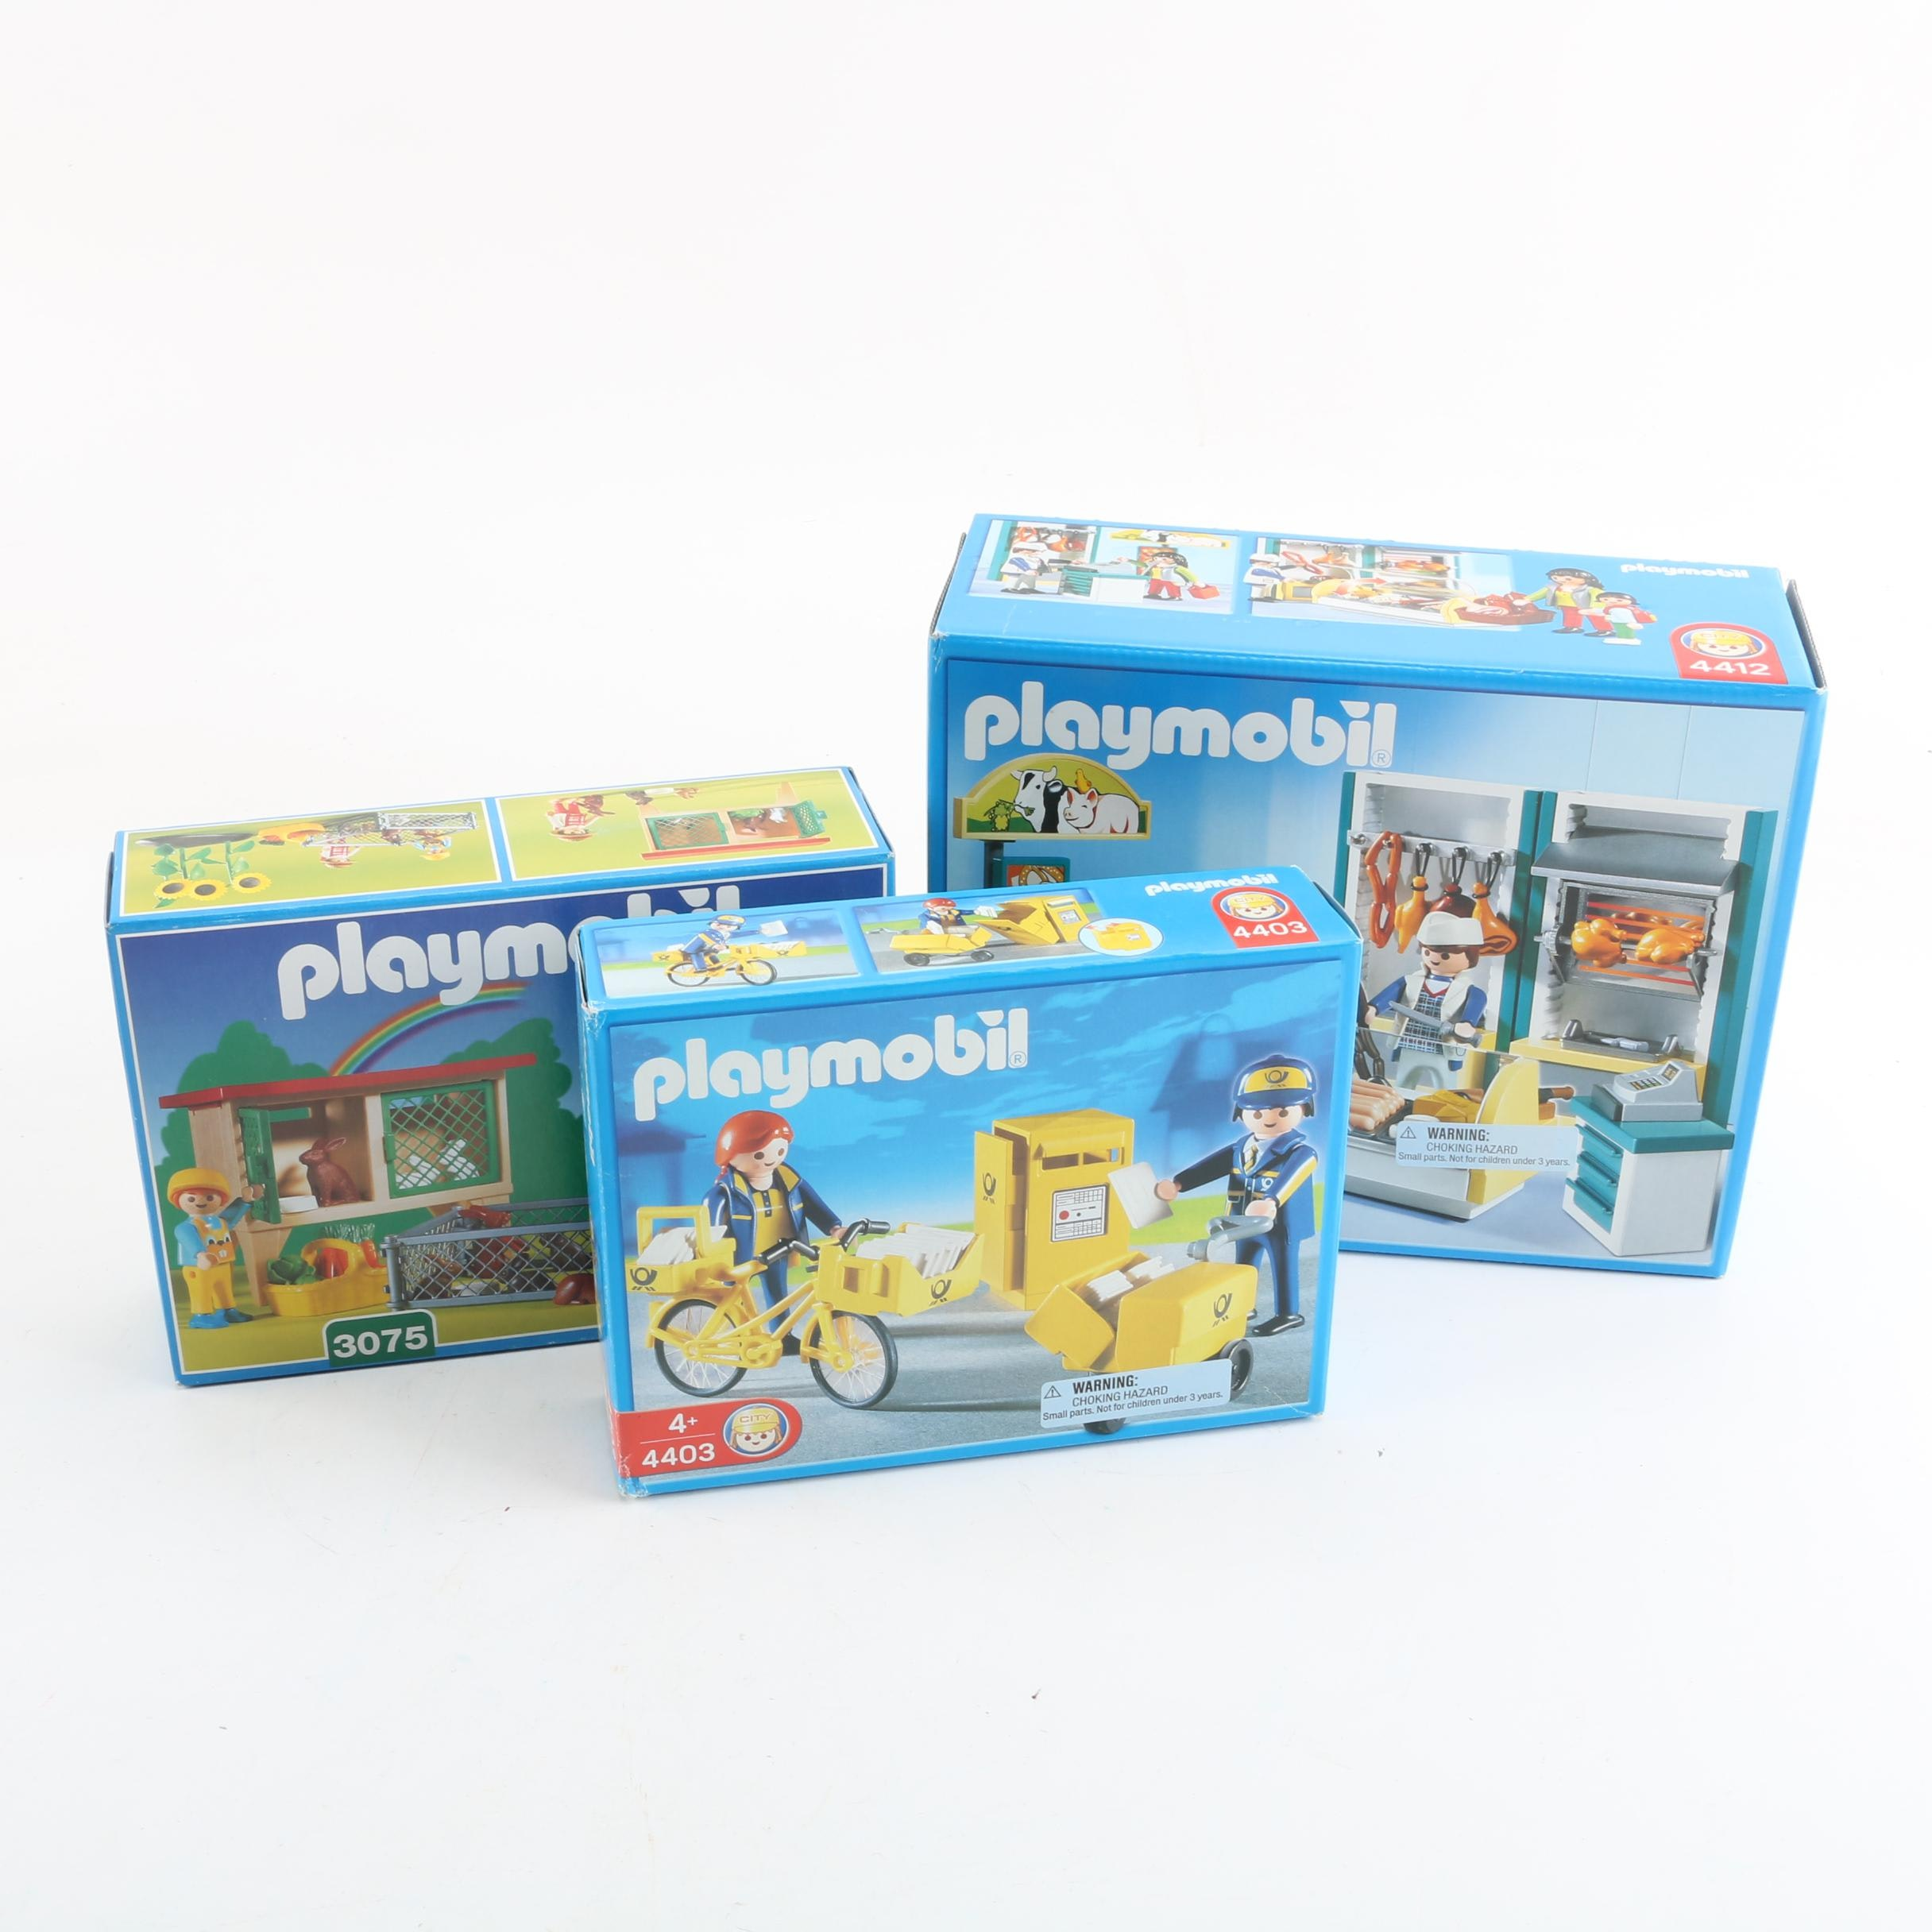 Playmobil Play Sets Including Butcher Shop and Rabbit Hutch